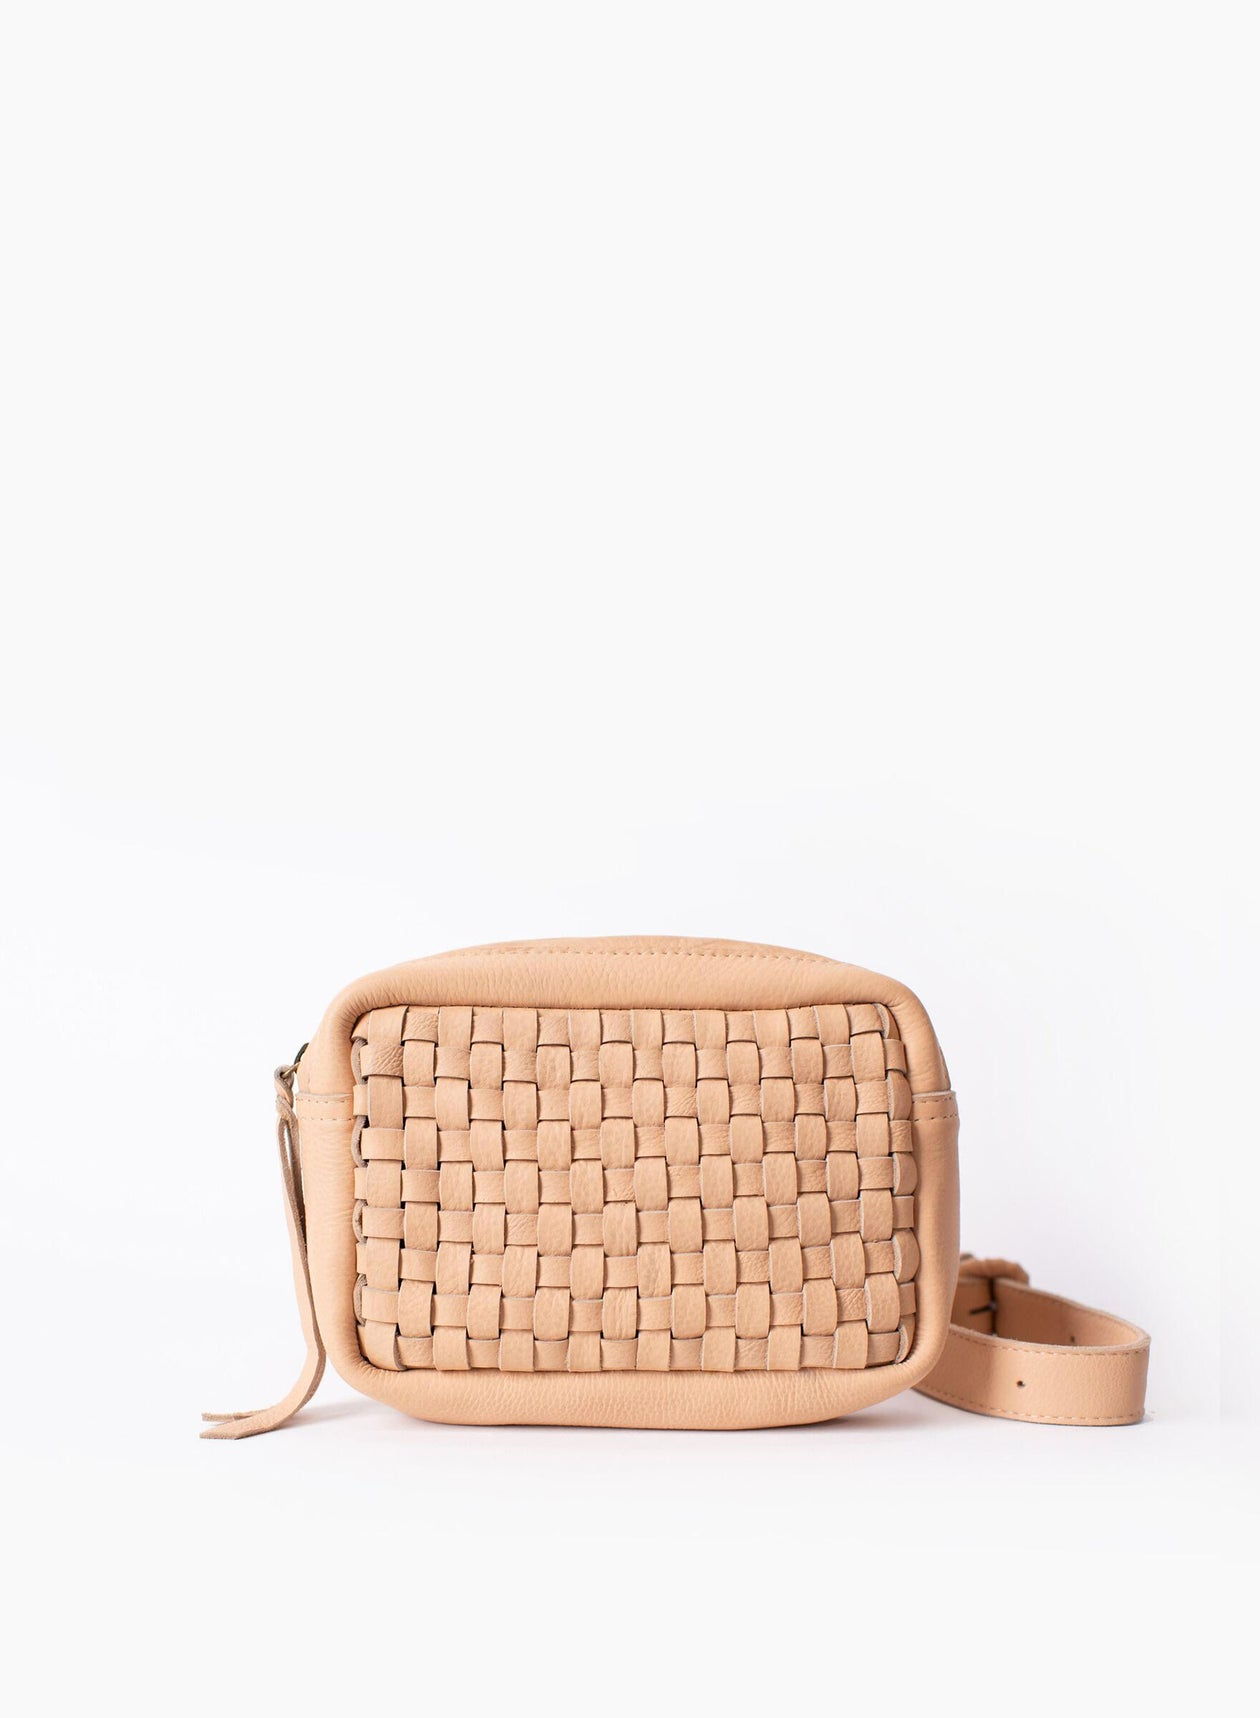 Seville Fannypack in Nude by Cleobella